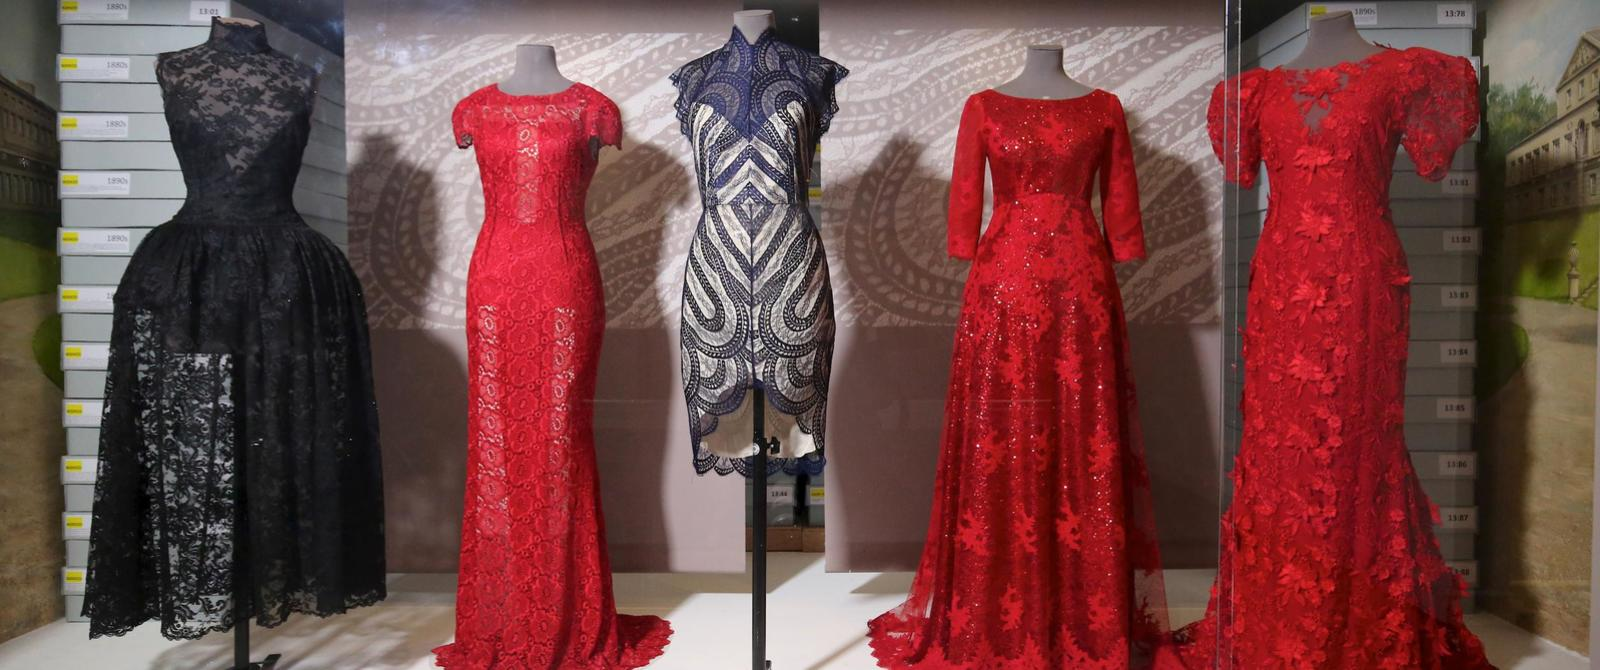 Image: Lace in Fashion display case